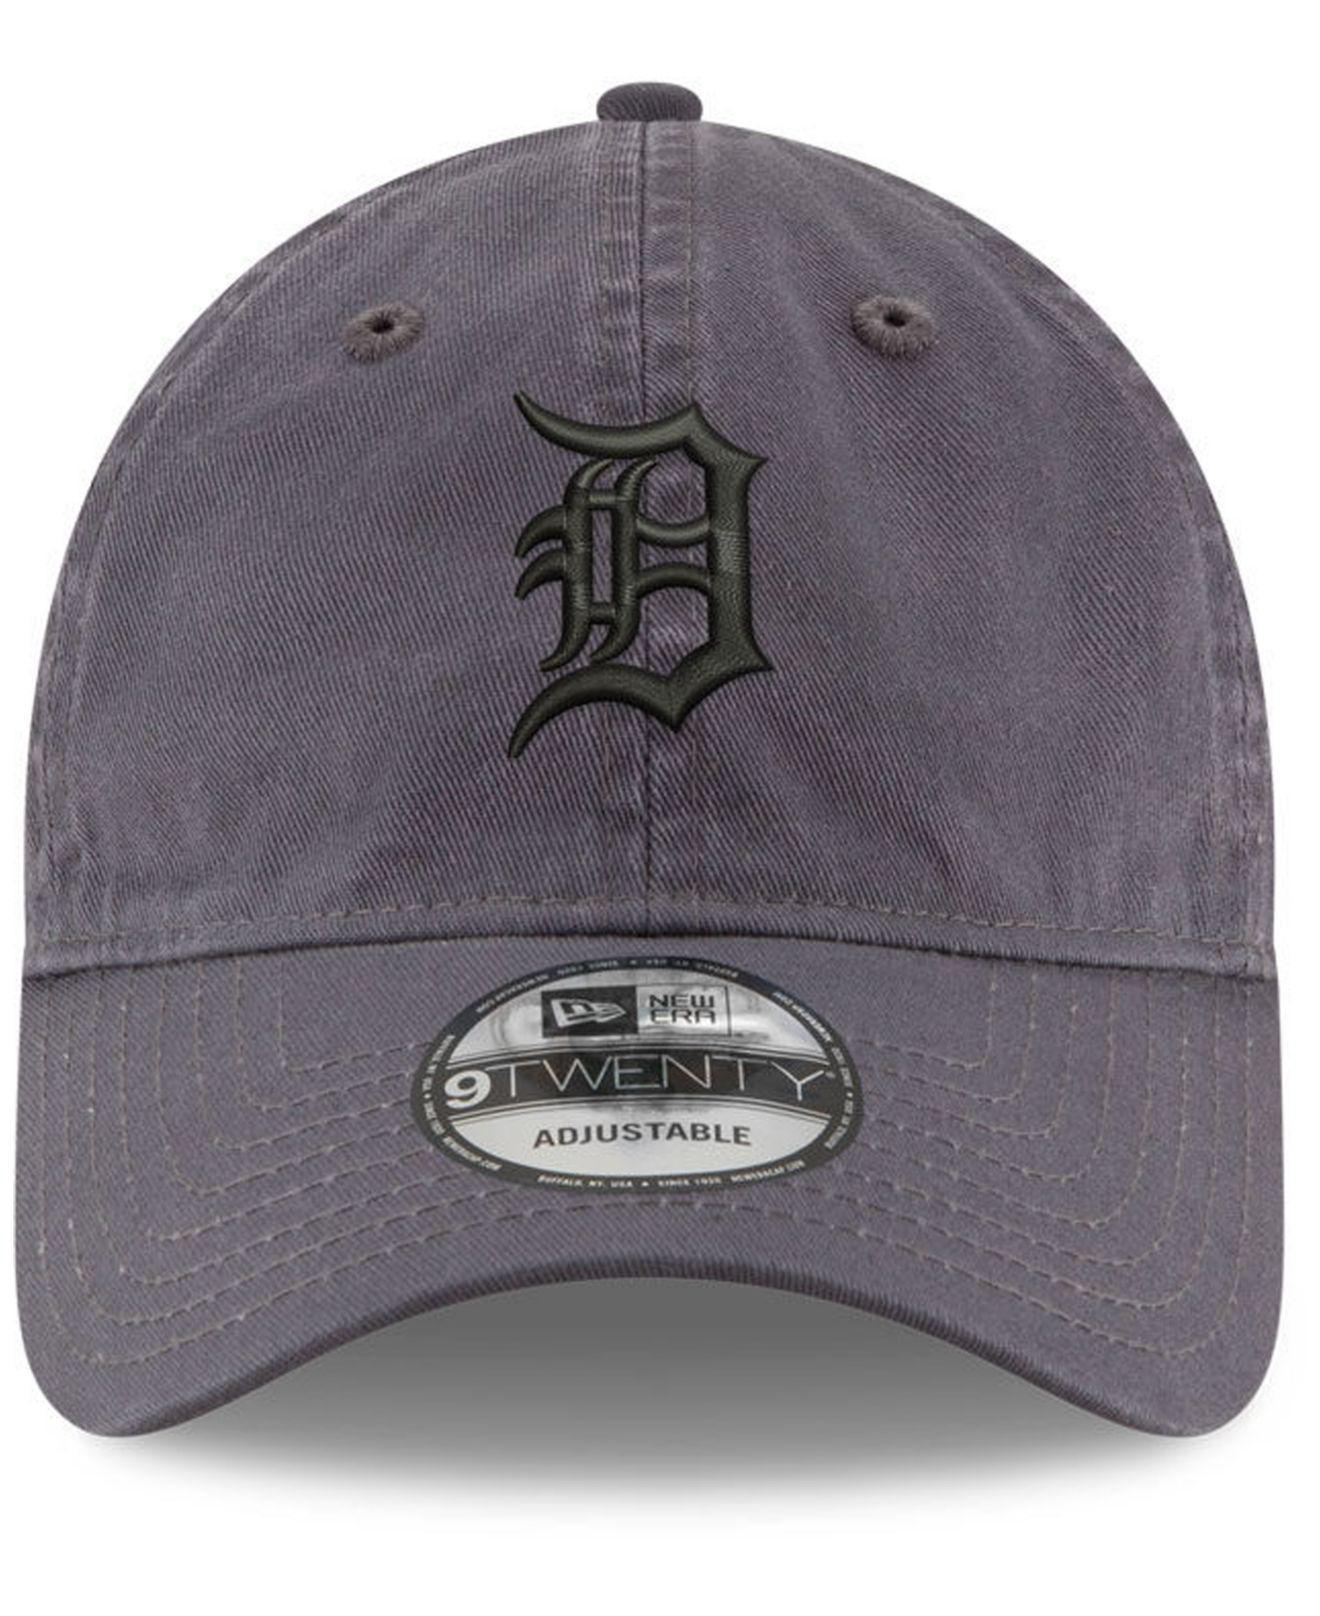 wholesale dealer 3980b be54e ... clearance lyst ktz detroit tigers graphite 9twenty cap in gray for men  6bf87 1b041